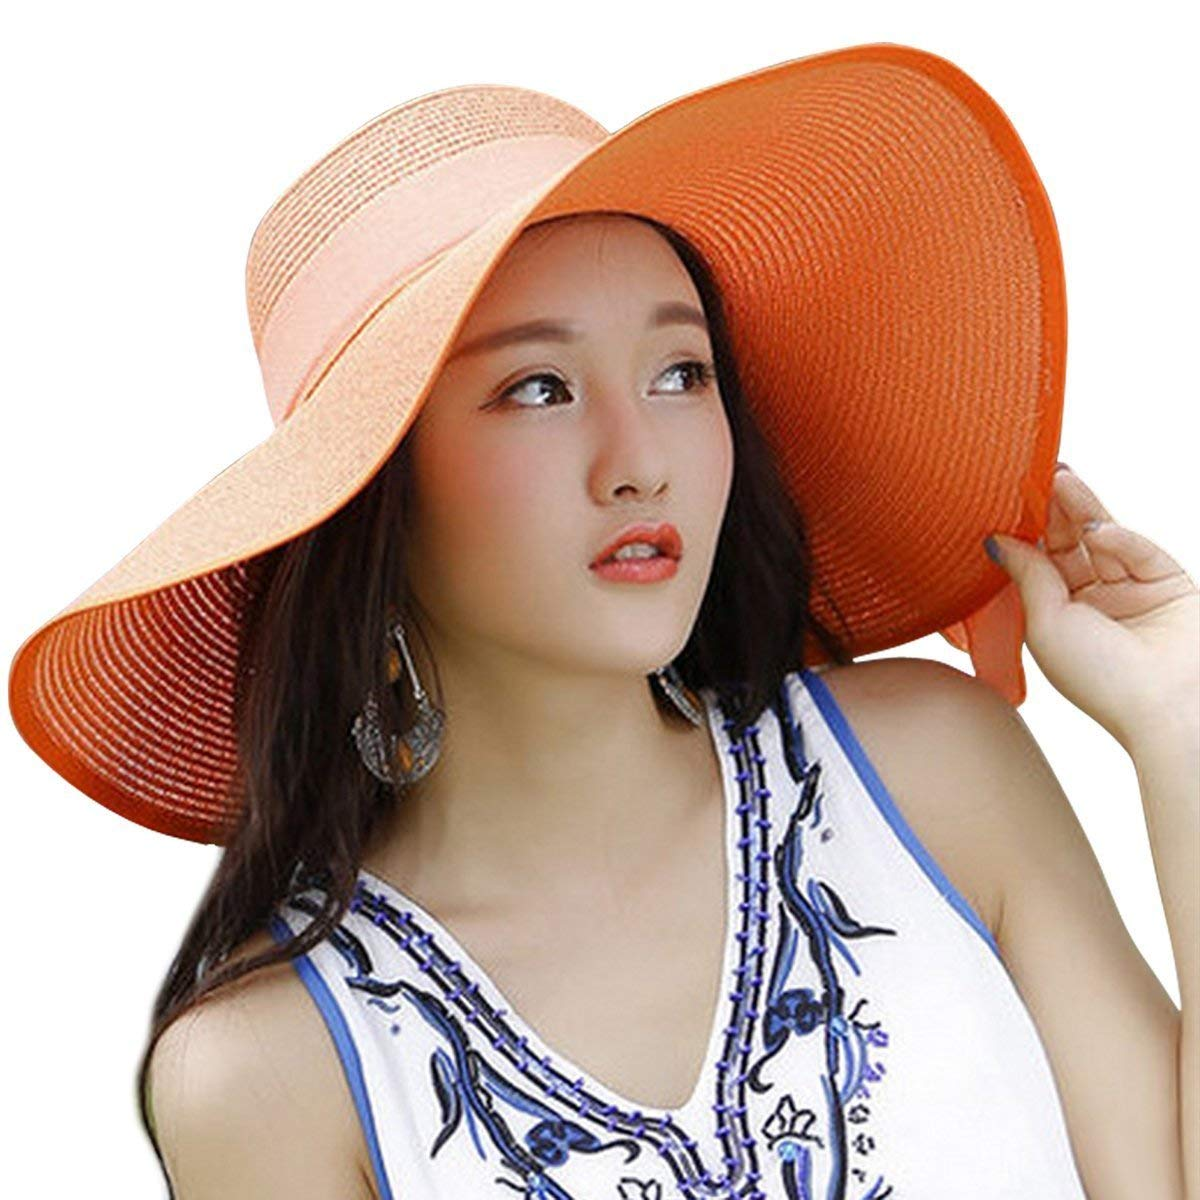 4b8ee4b9172cc Get Quotations · FashionRun Womens Big Bowknot Straw Hat Floppy Foldable  Roll up Beach Cap Sun Hat UPF 50